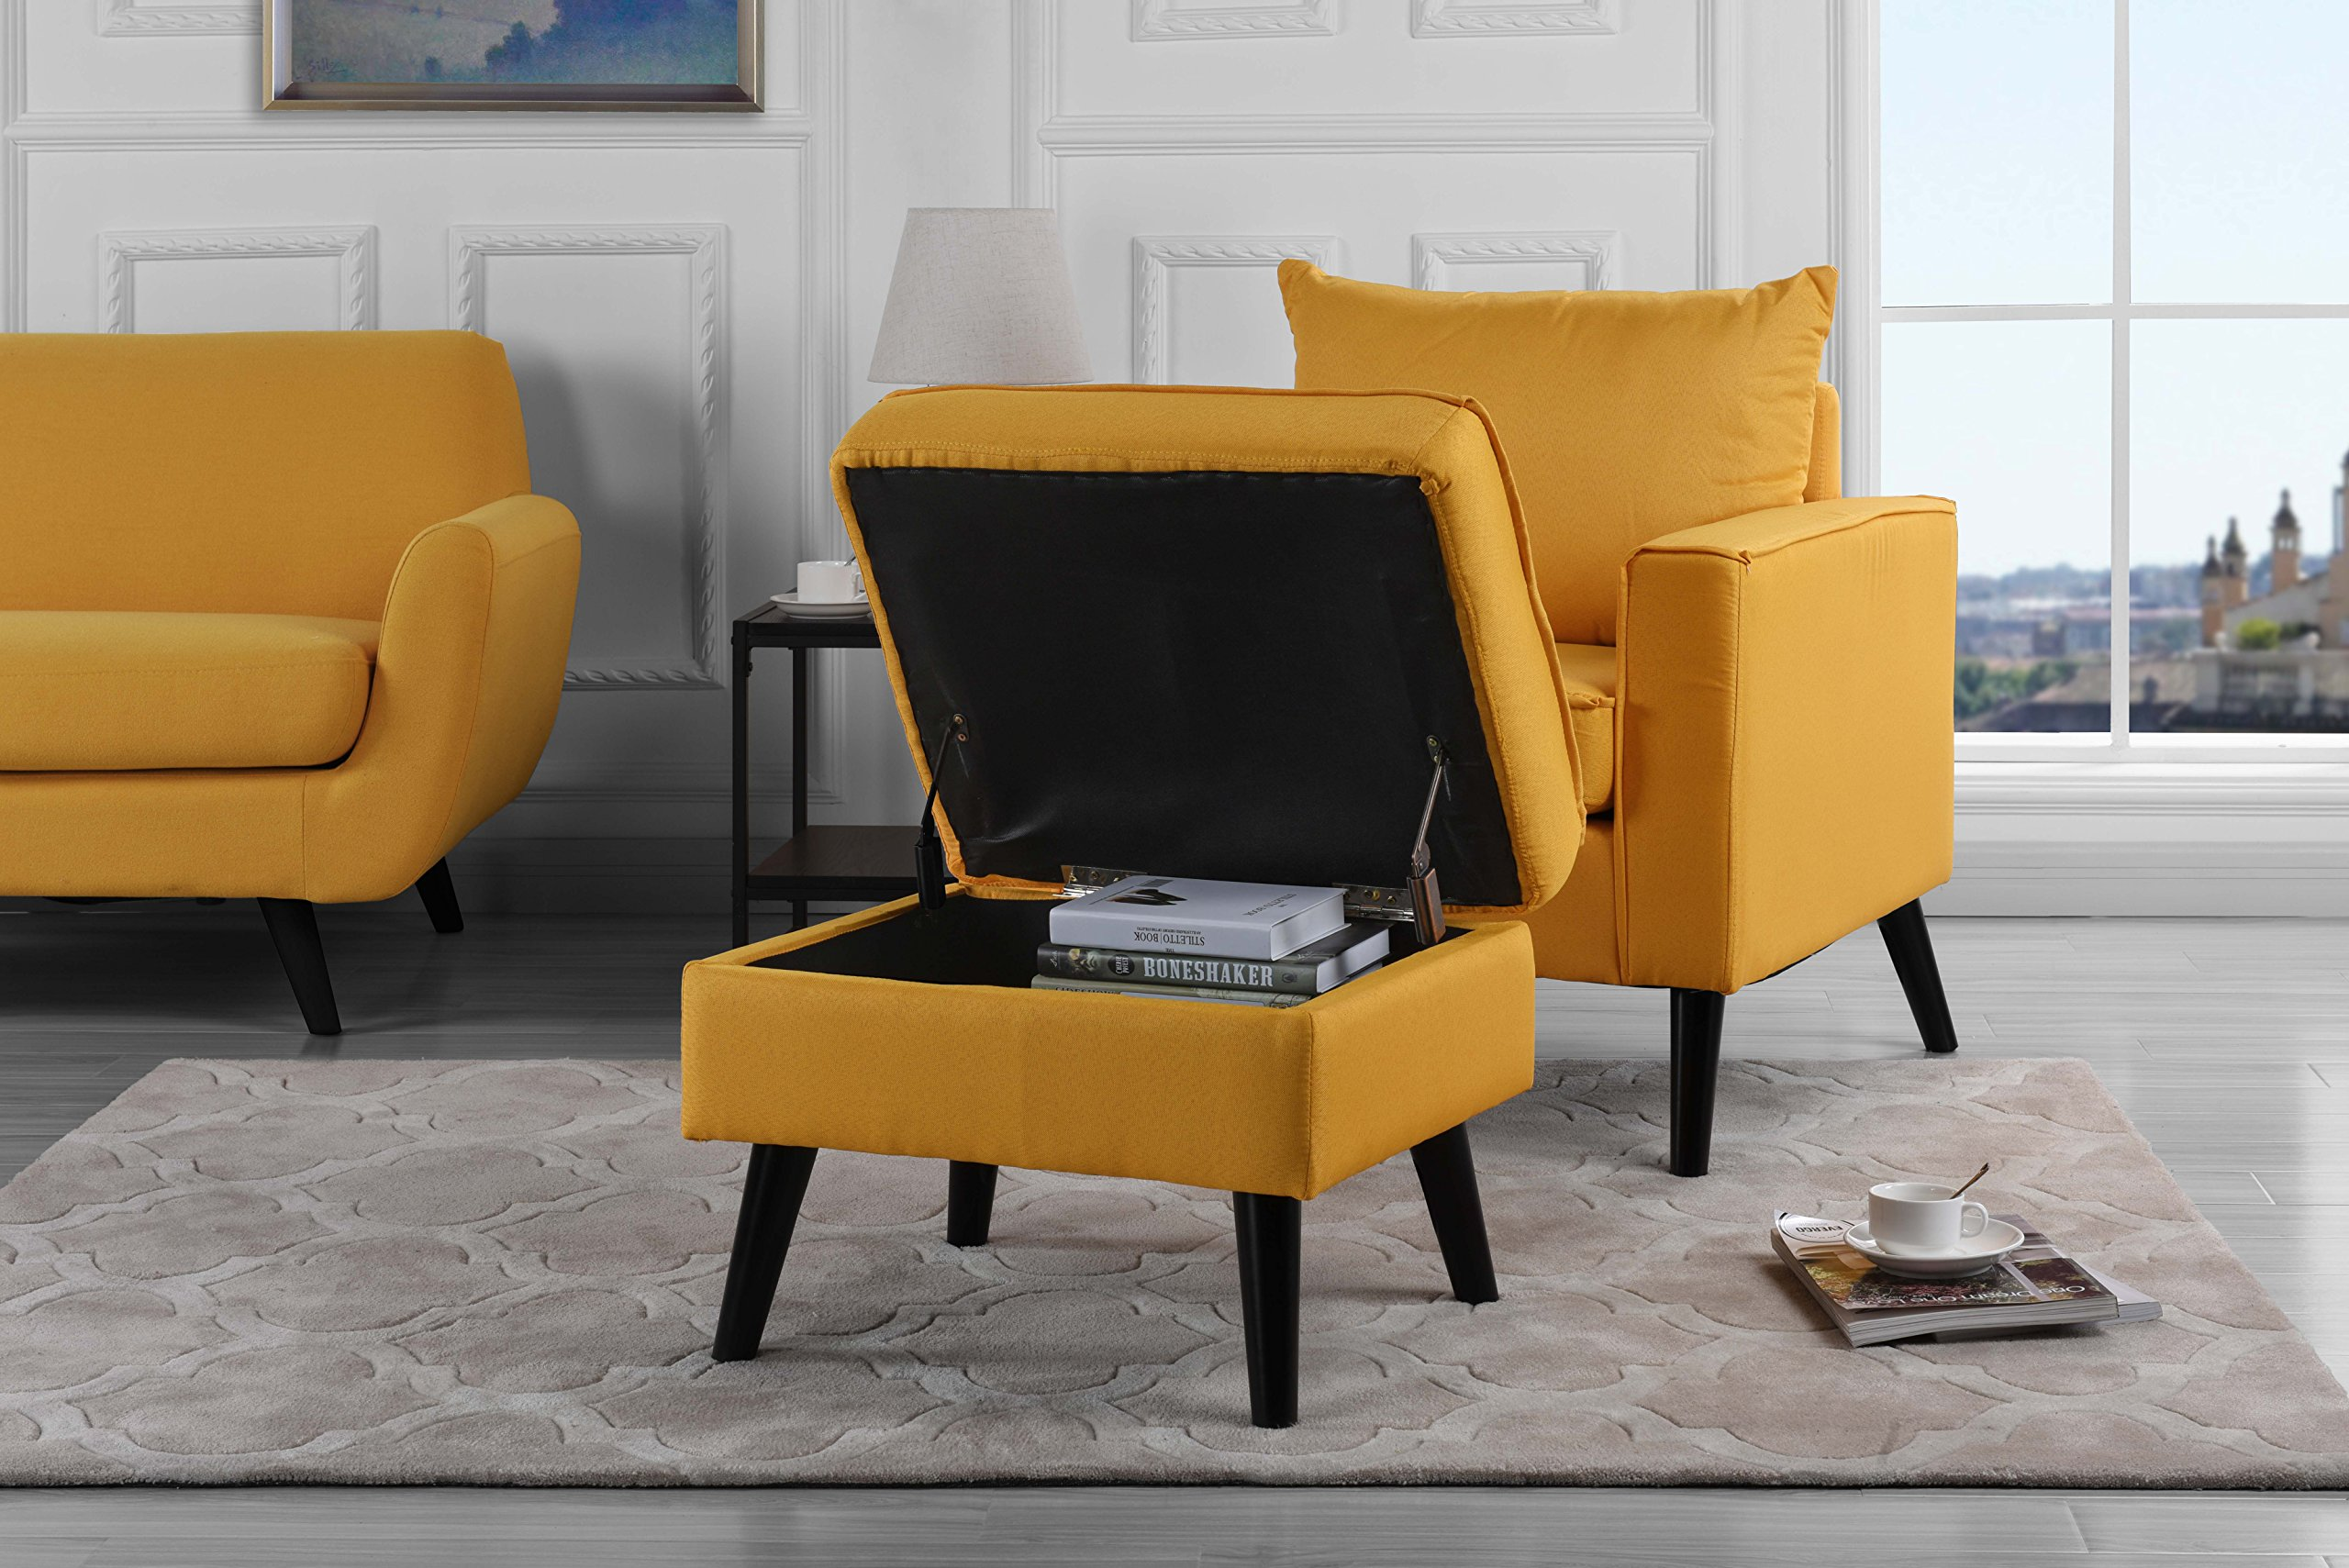 Mid-Century Modern Living Room Large Accent Chair with Footrest/Storage Ottoman (Yellow)